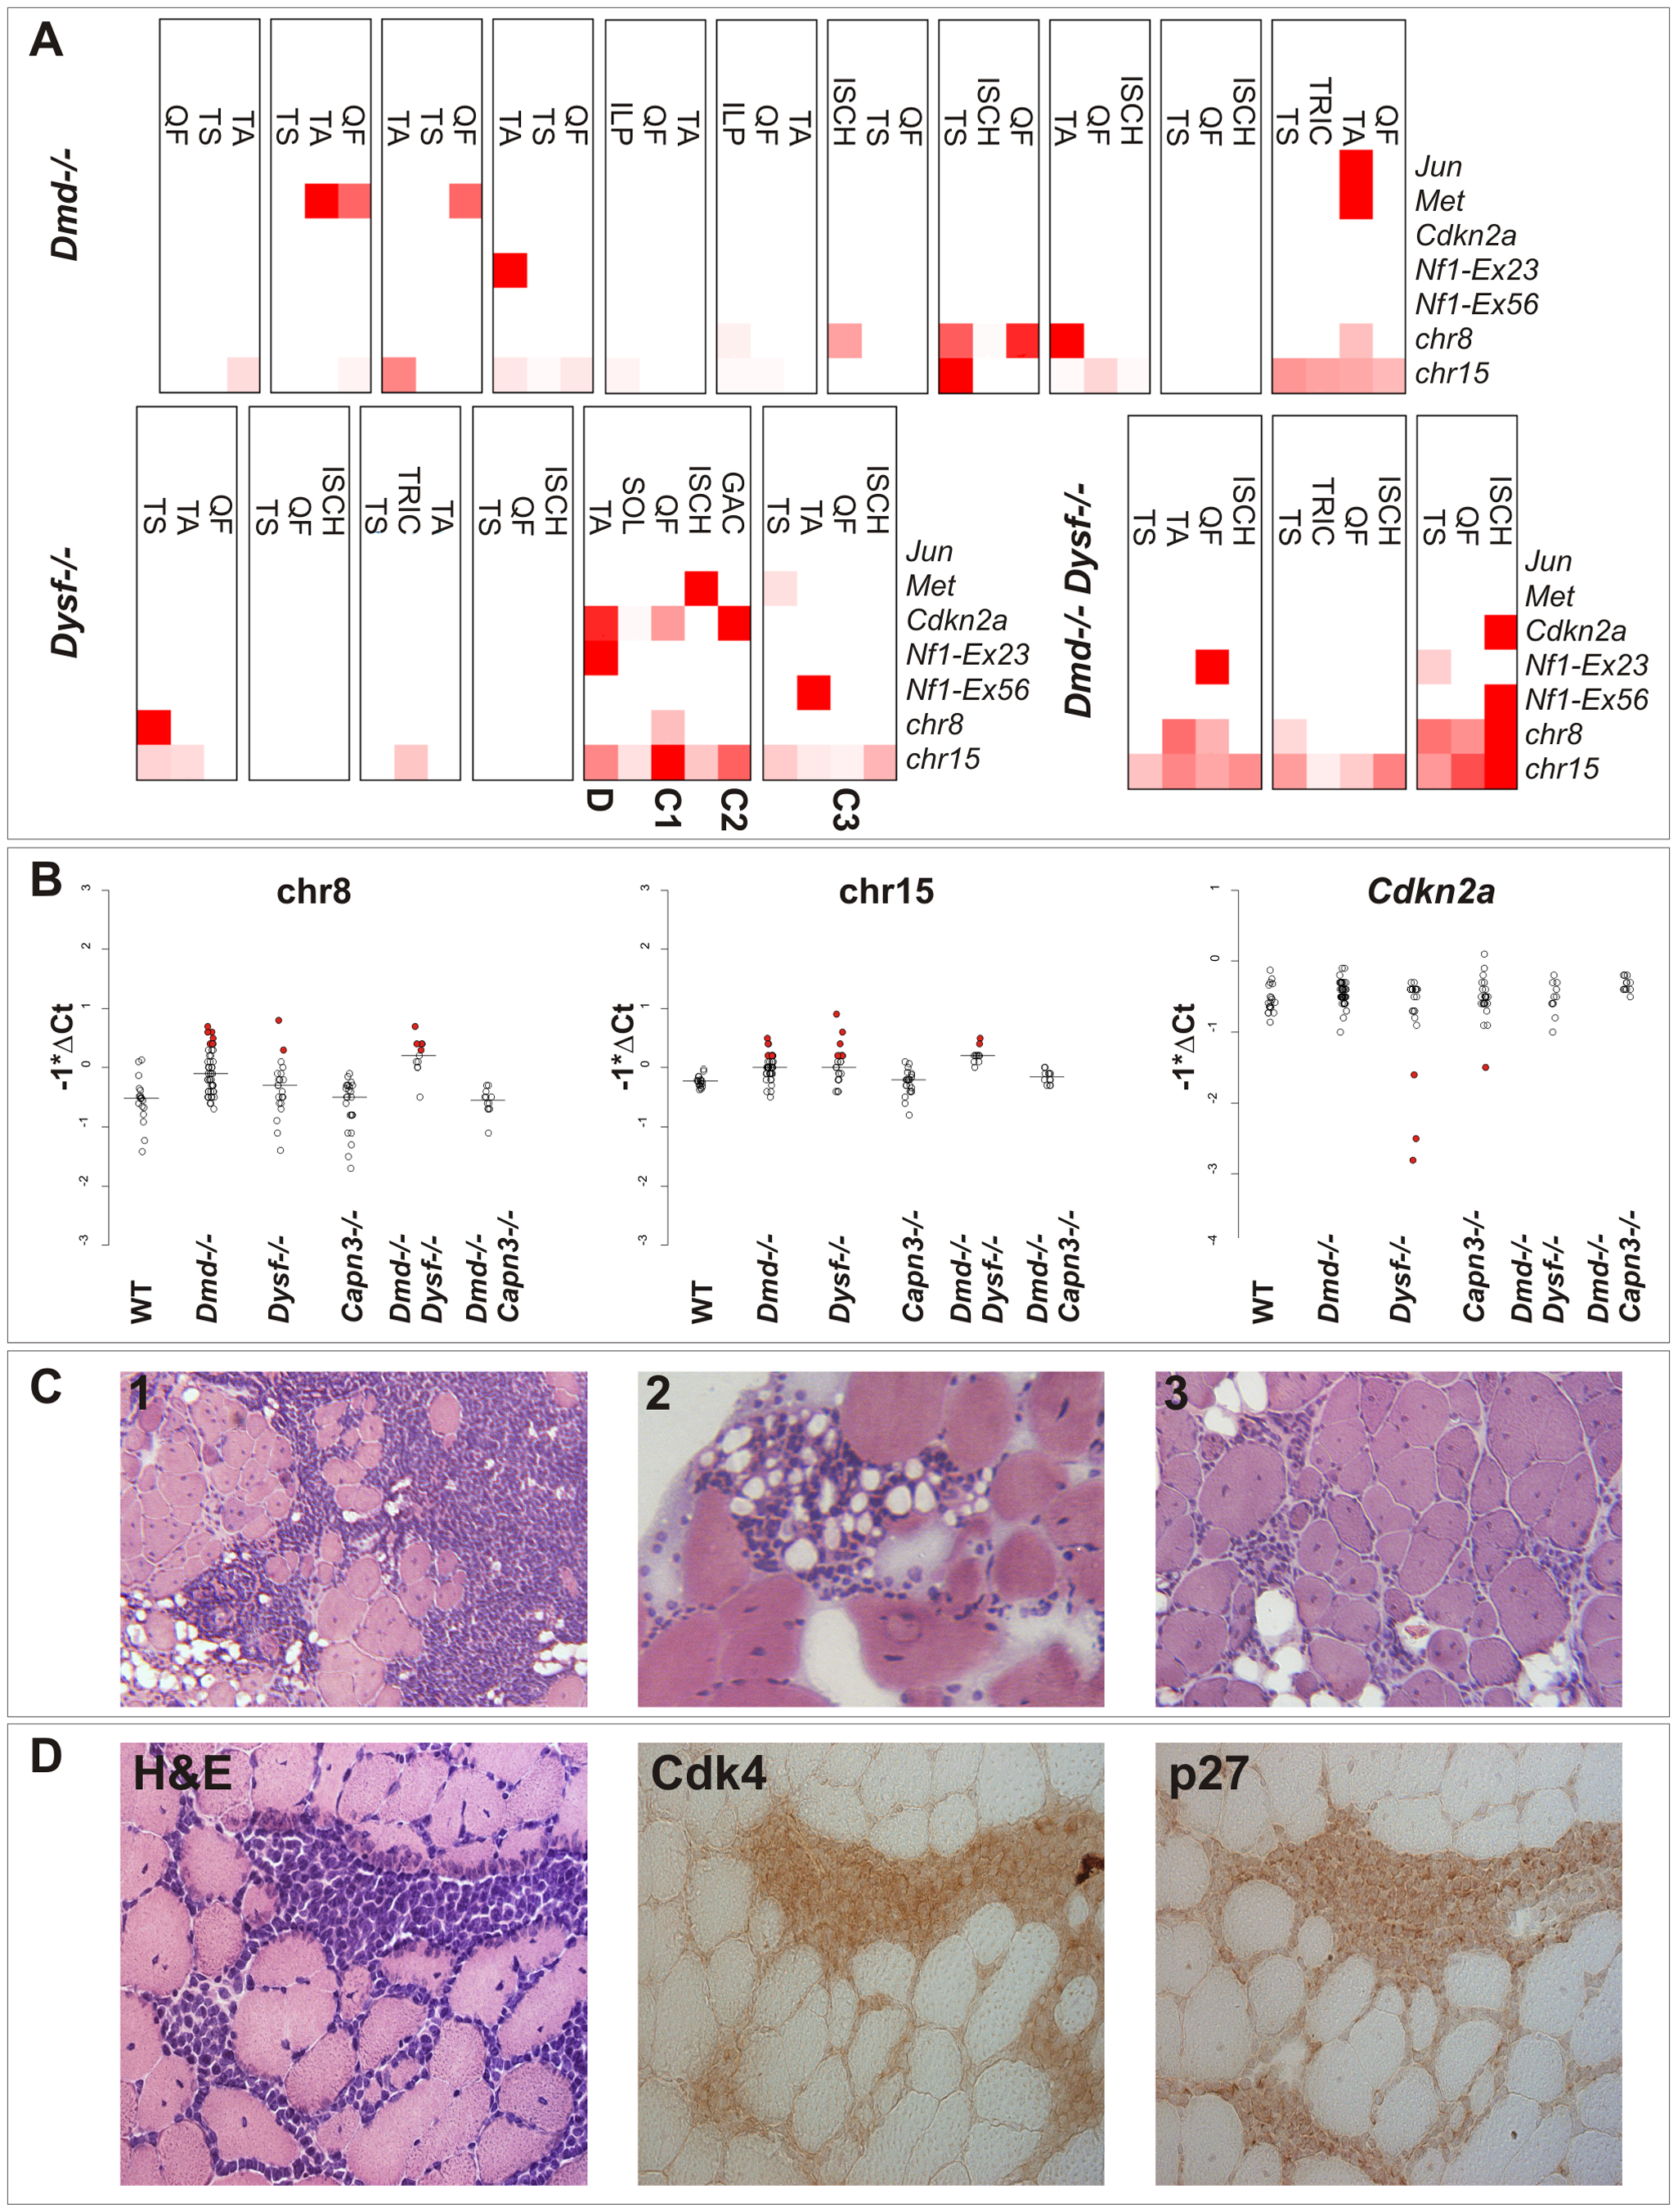 Genetic alterations frequently found in sarcomas are detectable in dystrophic skeletal muscle from clinically tumor-free mice.